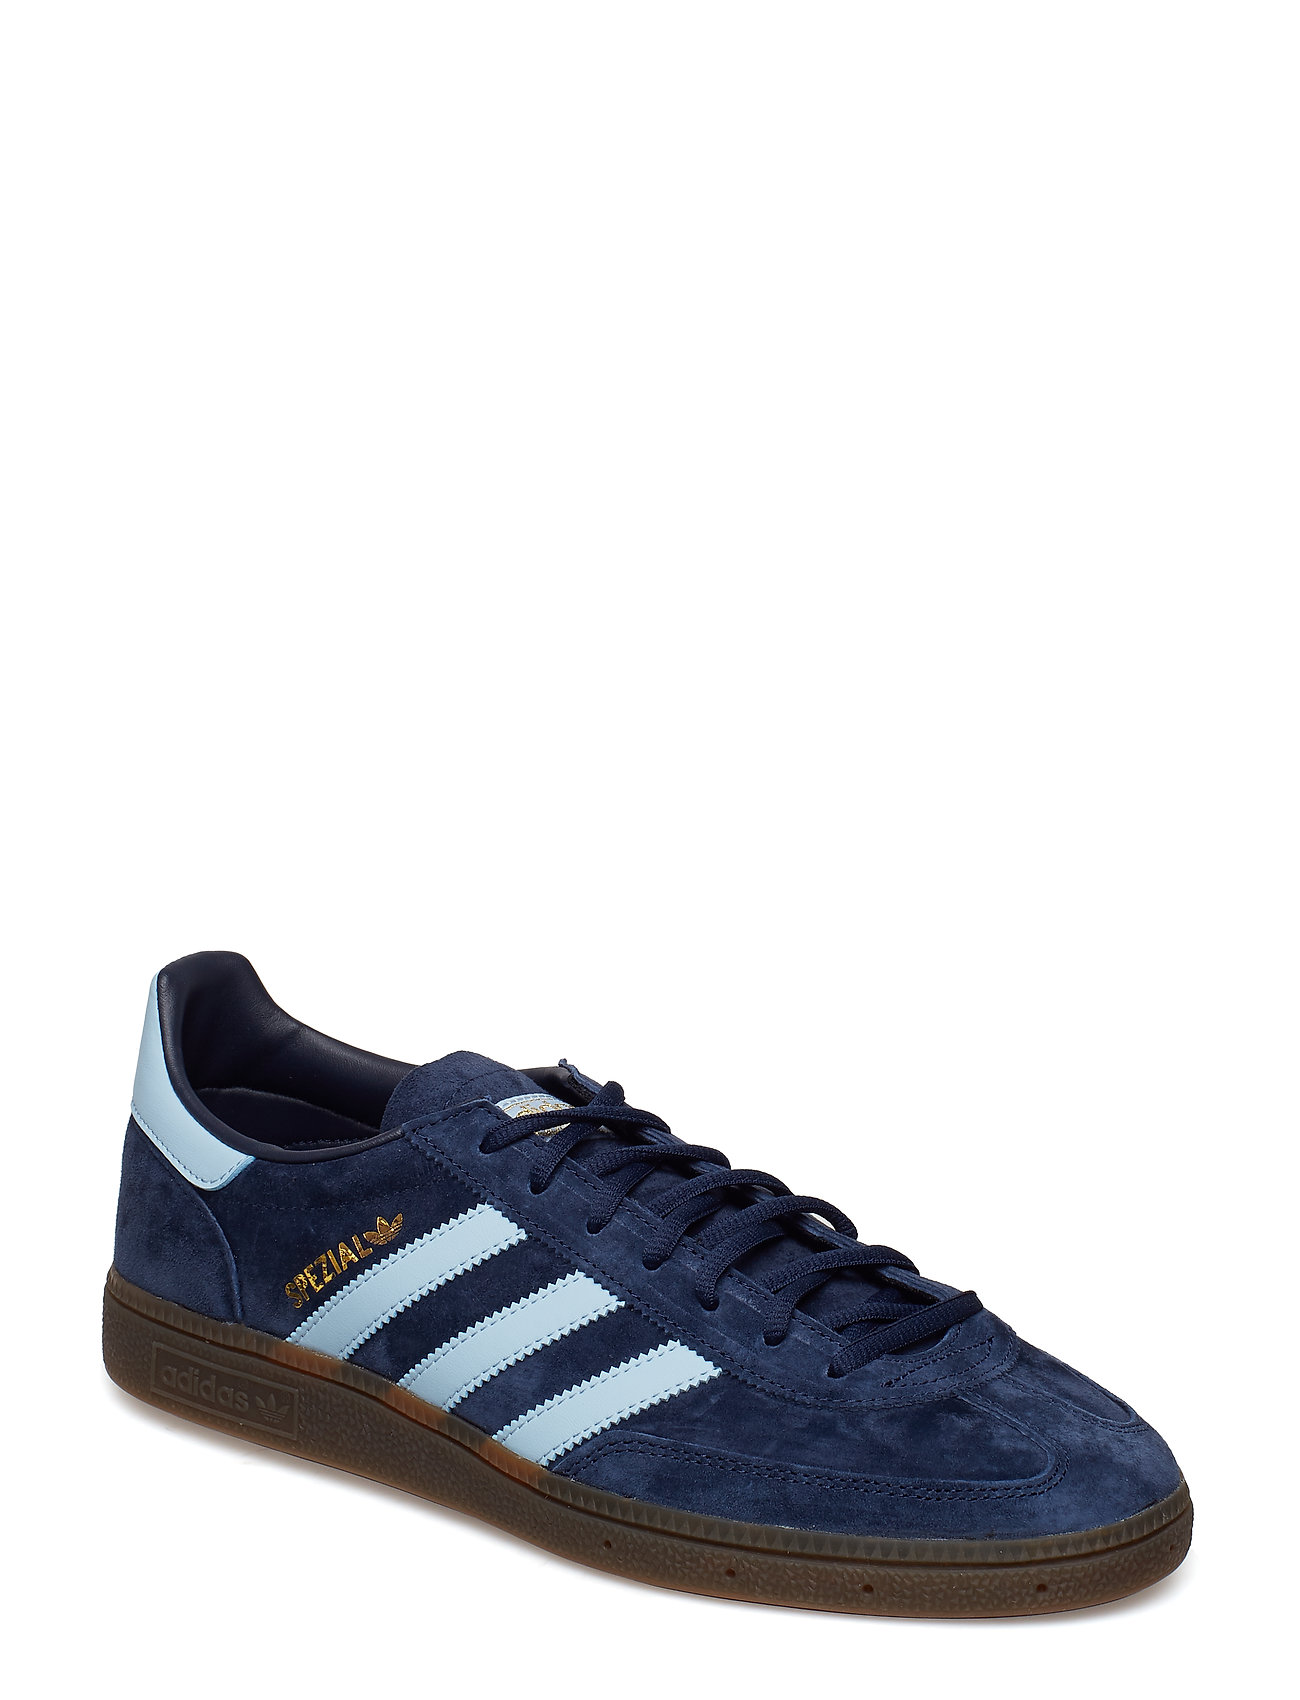 6d013ab0d Handball Spezial Low-top Sneakers Blå ADIDAS ORIGINALS